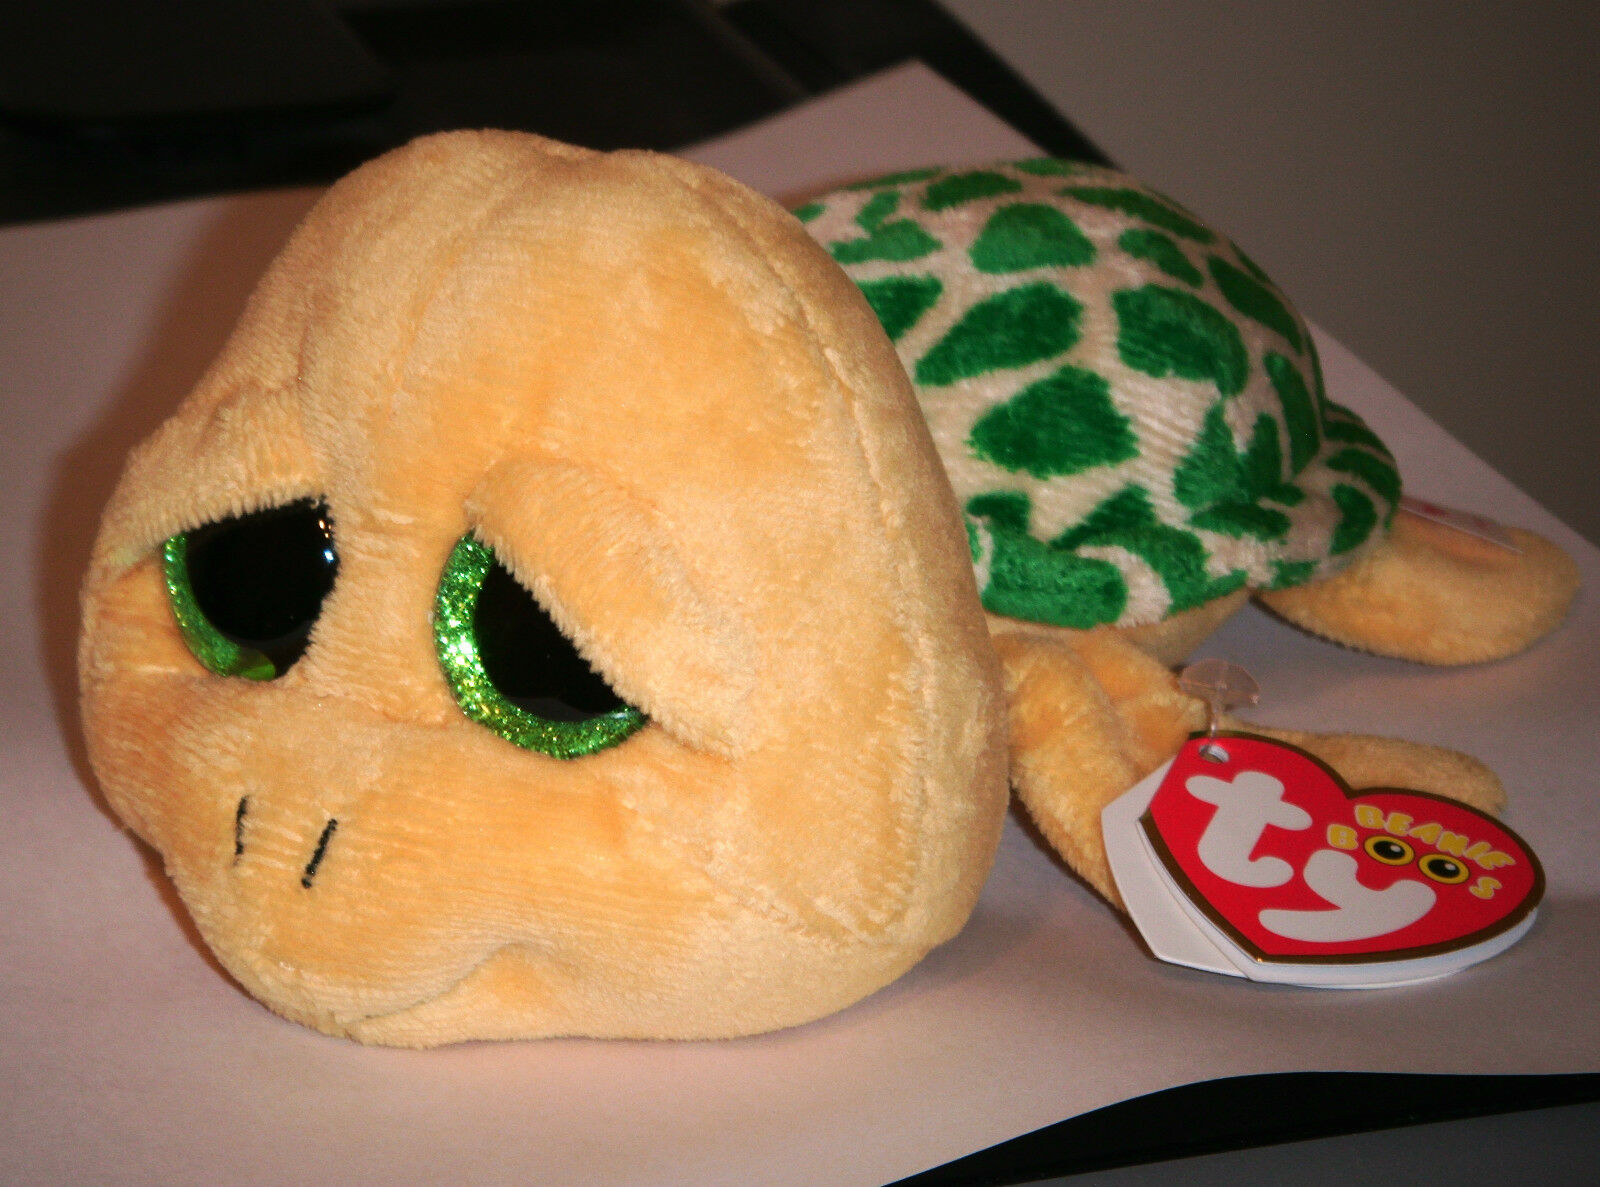 Buy Pokey 2013 Ty Beanie Babie Boos 6in Yellow Turtle Green Sparkle Eyes  3up 36097 online  a89adaef821